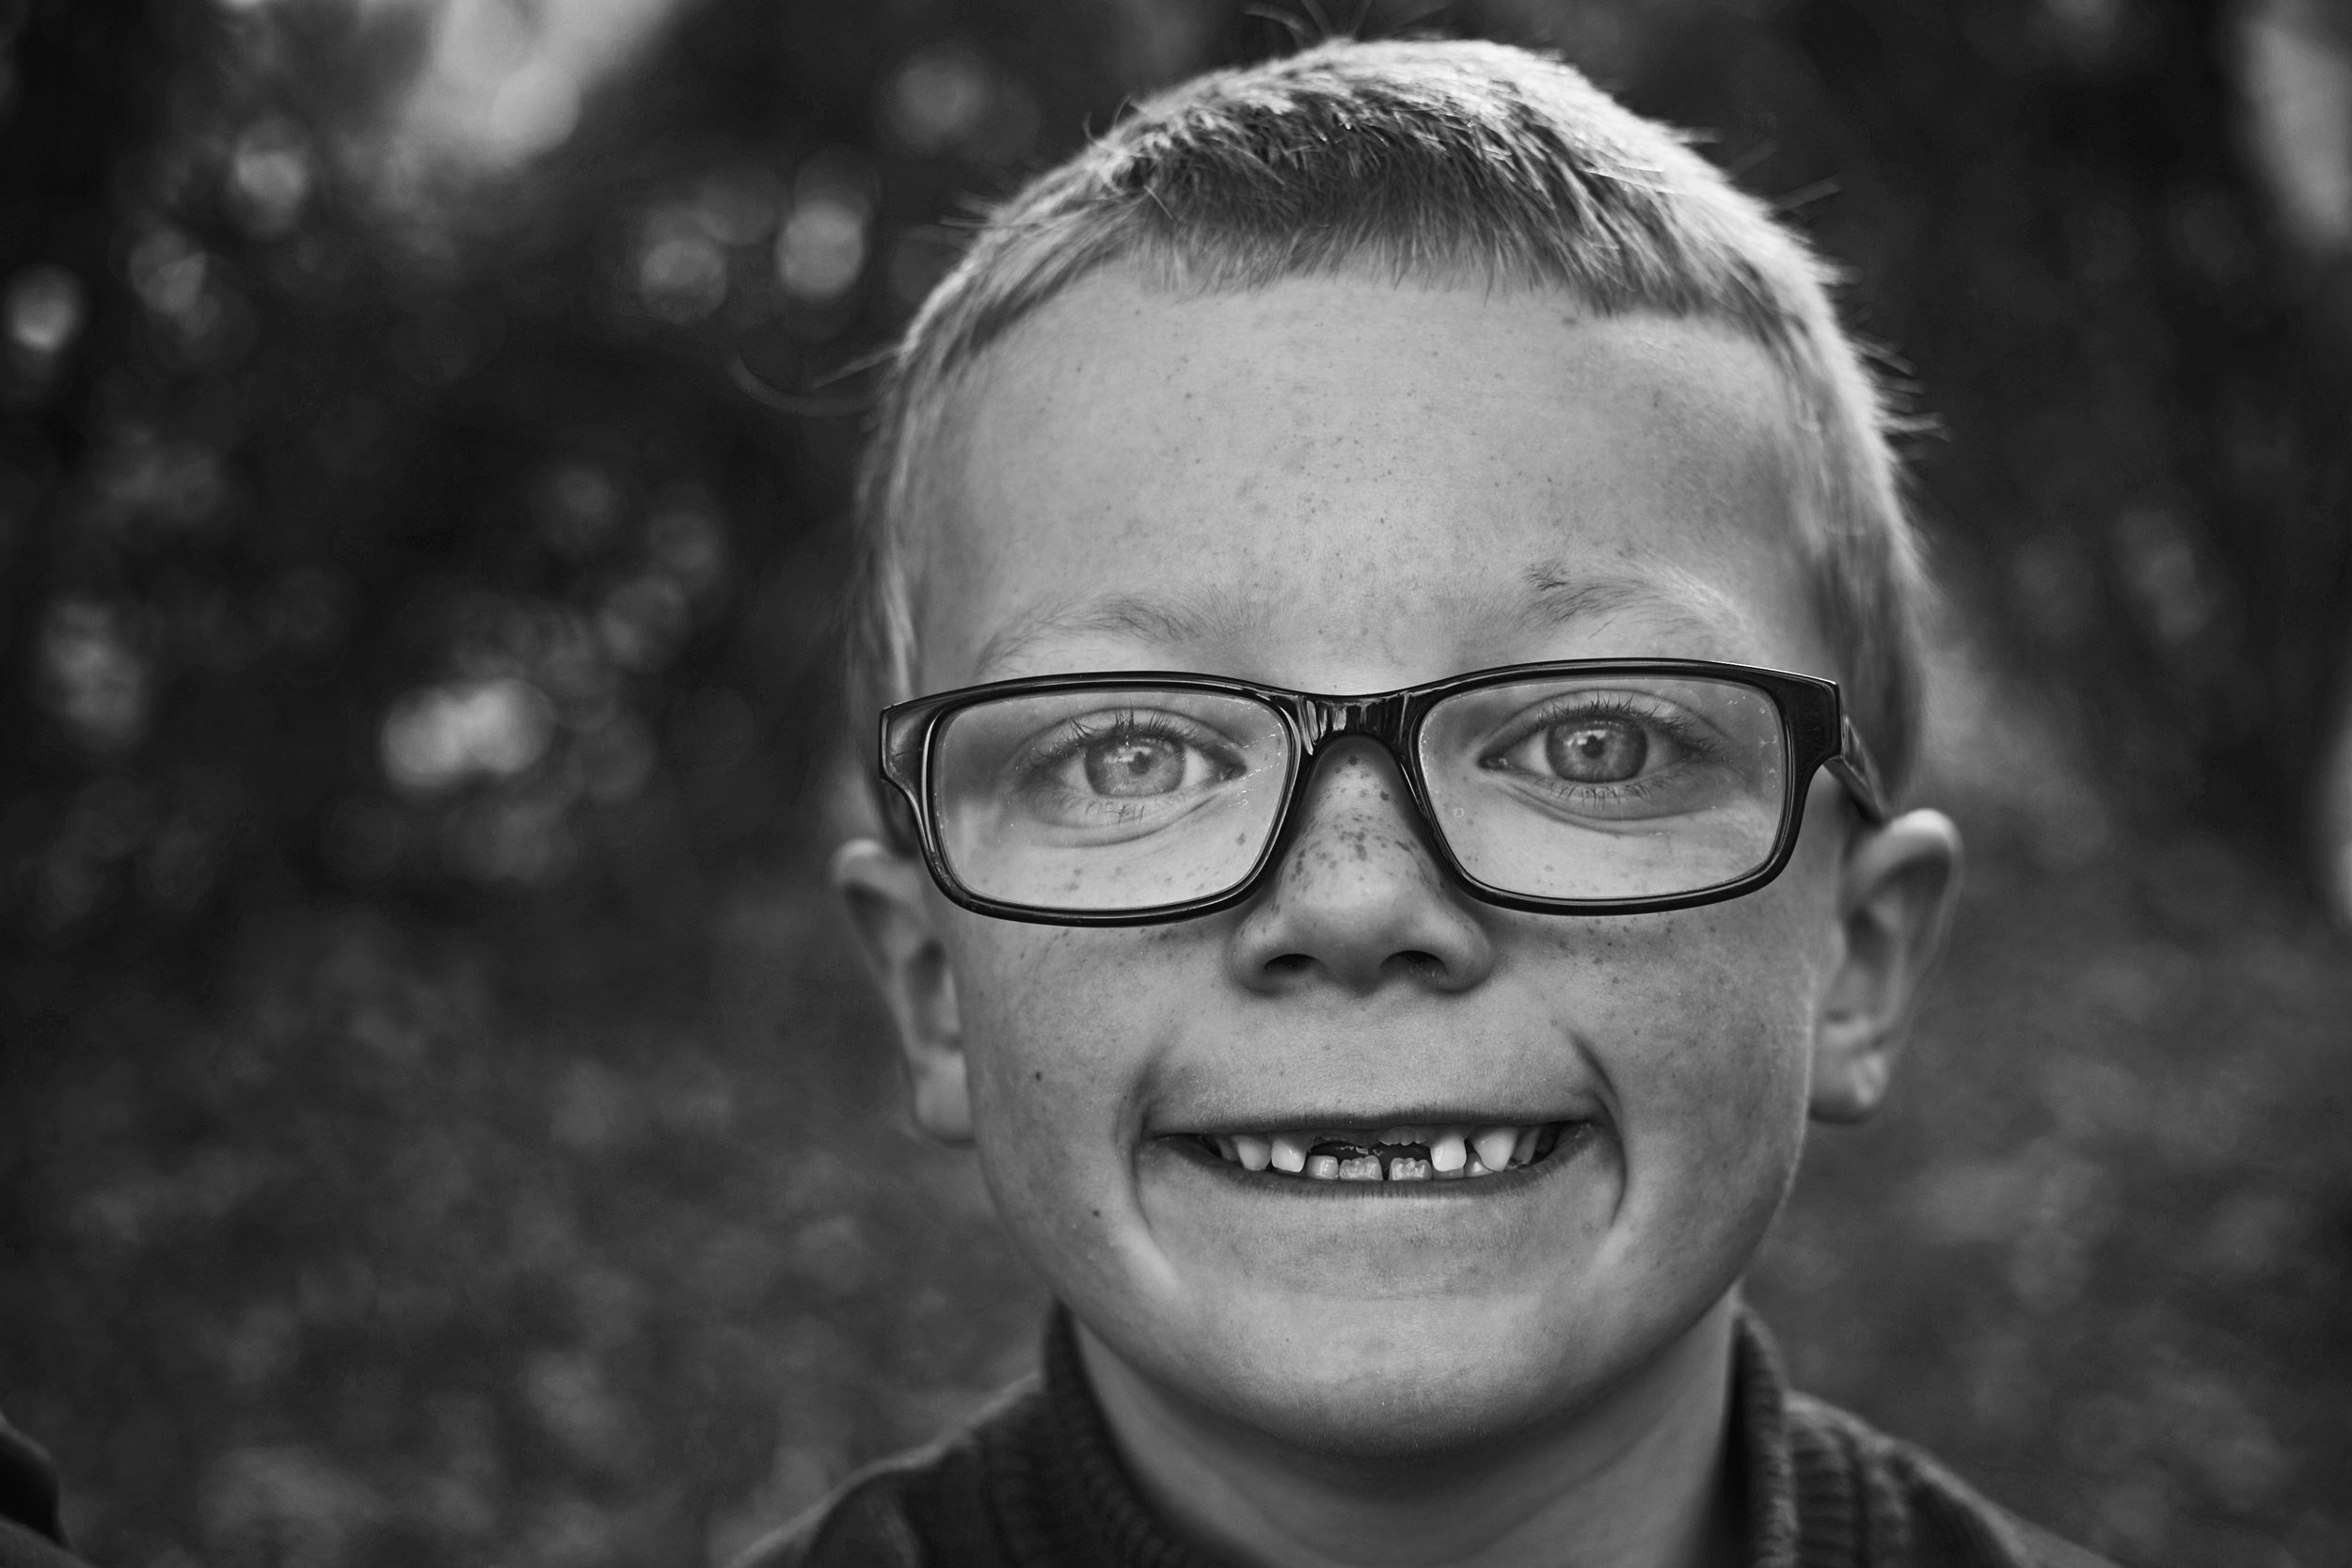 Portraits of kids can document growth like missing teeth as seen in the picture of a Richmond native boy.